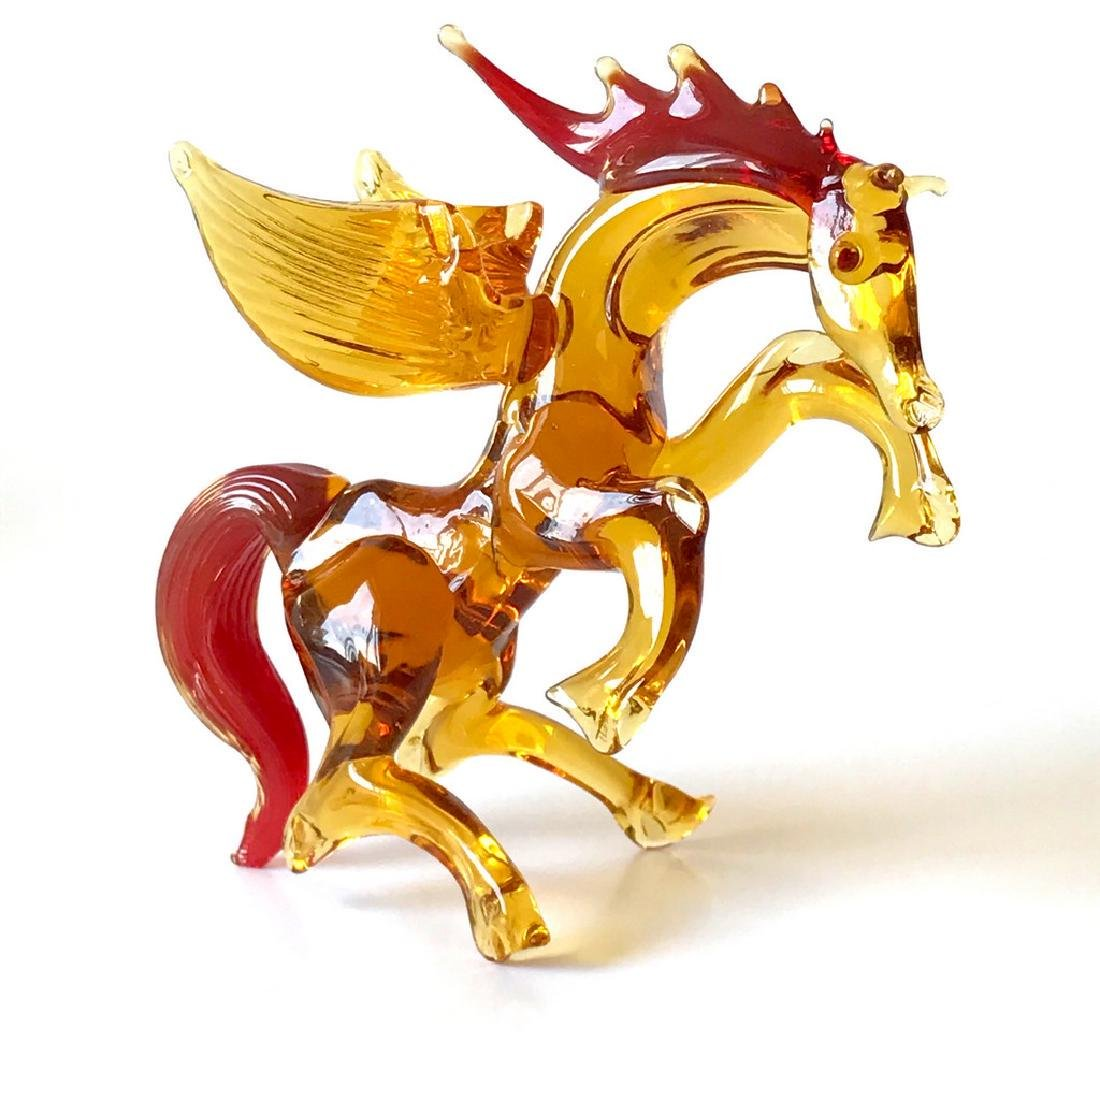 Figurine of Pegasus the winged horse amber coloured - 4